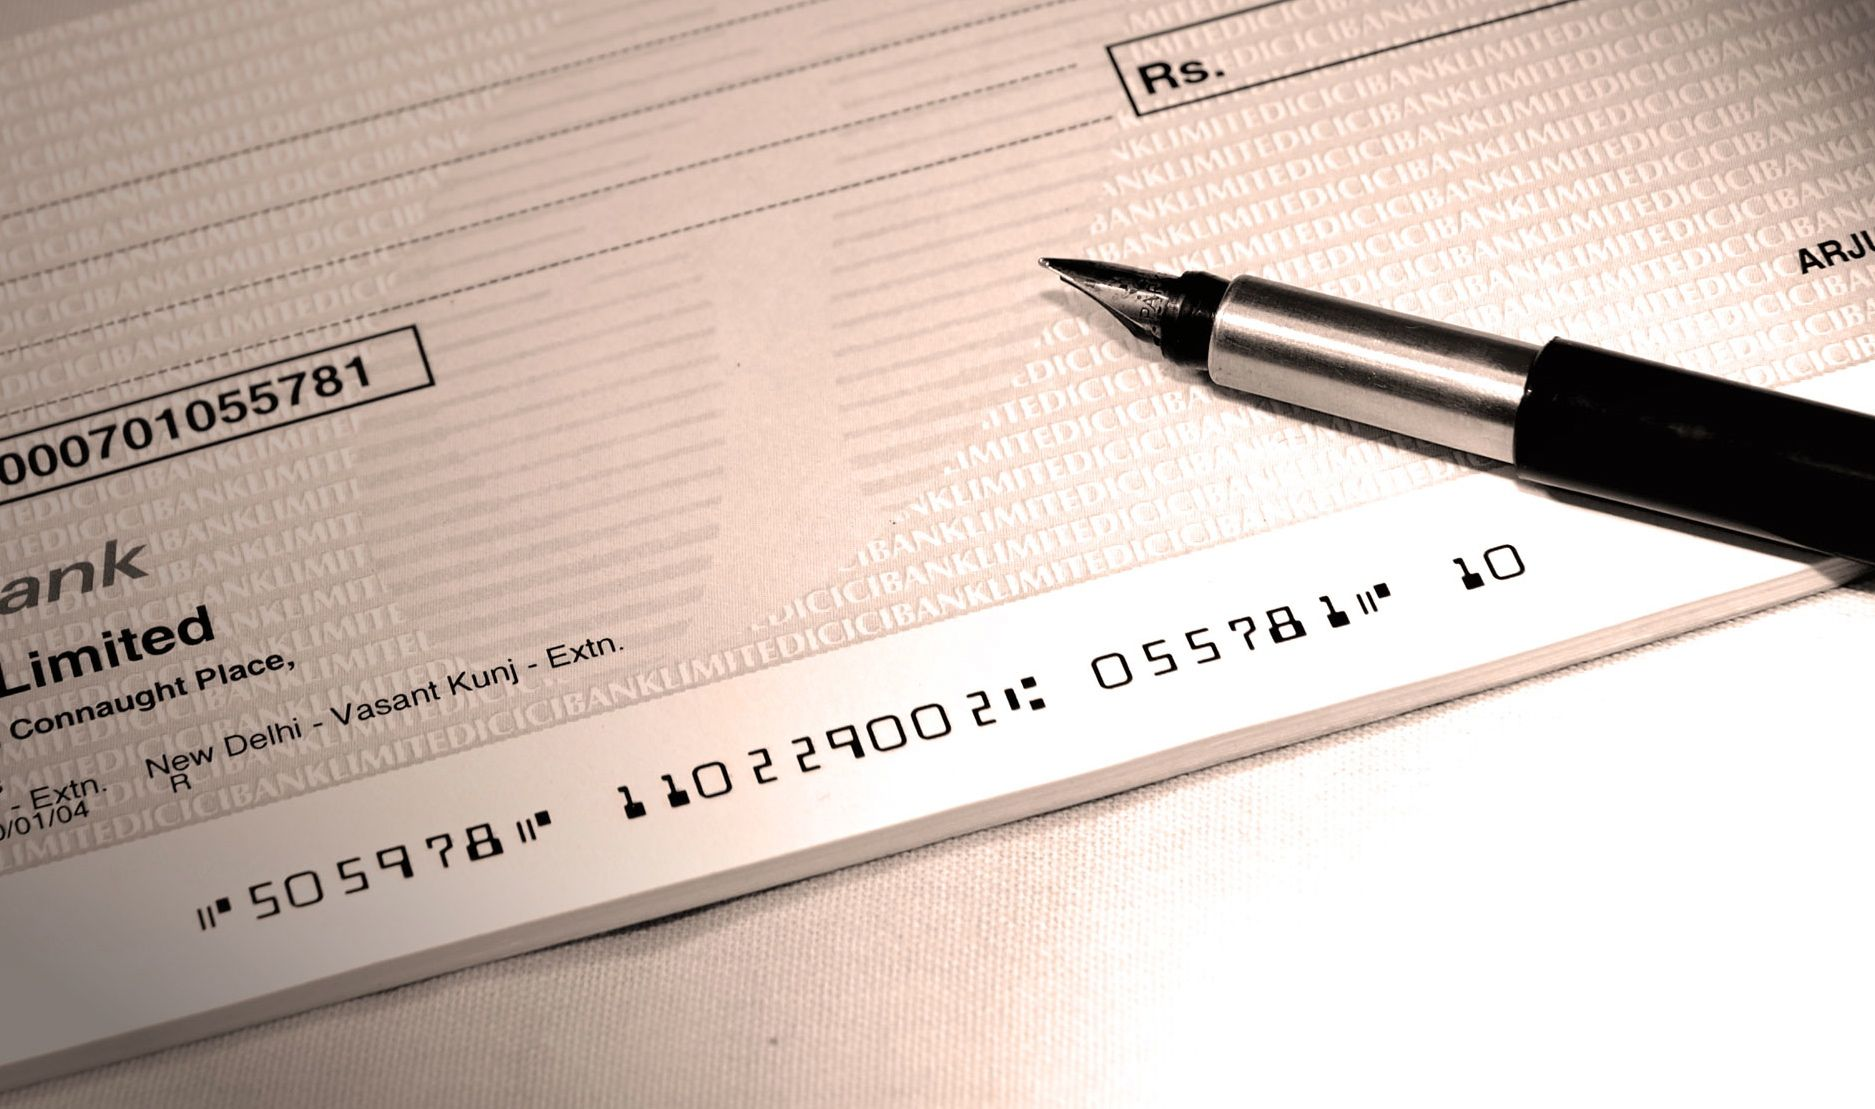 bank-account-numbers